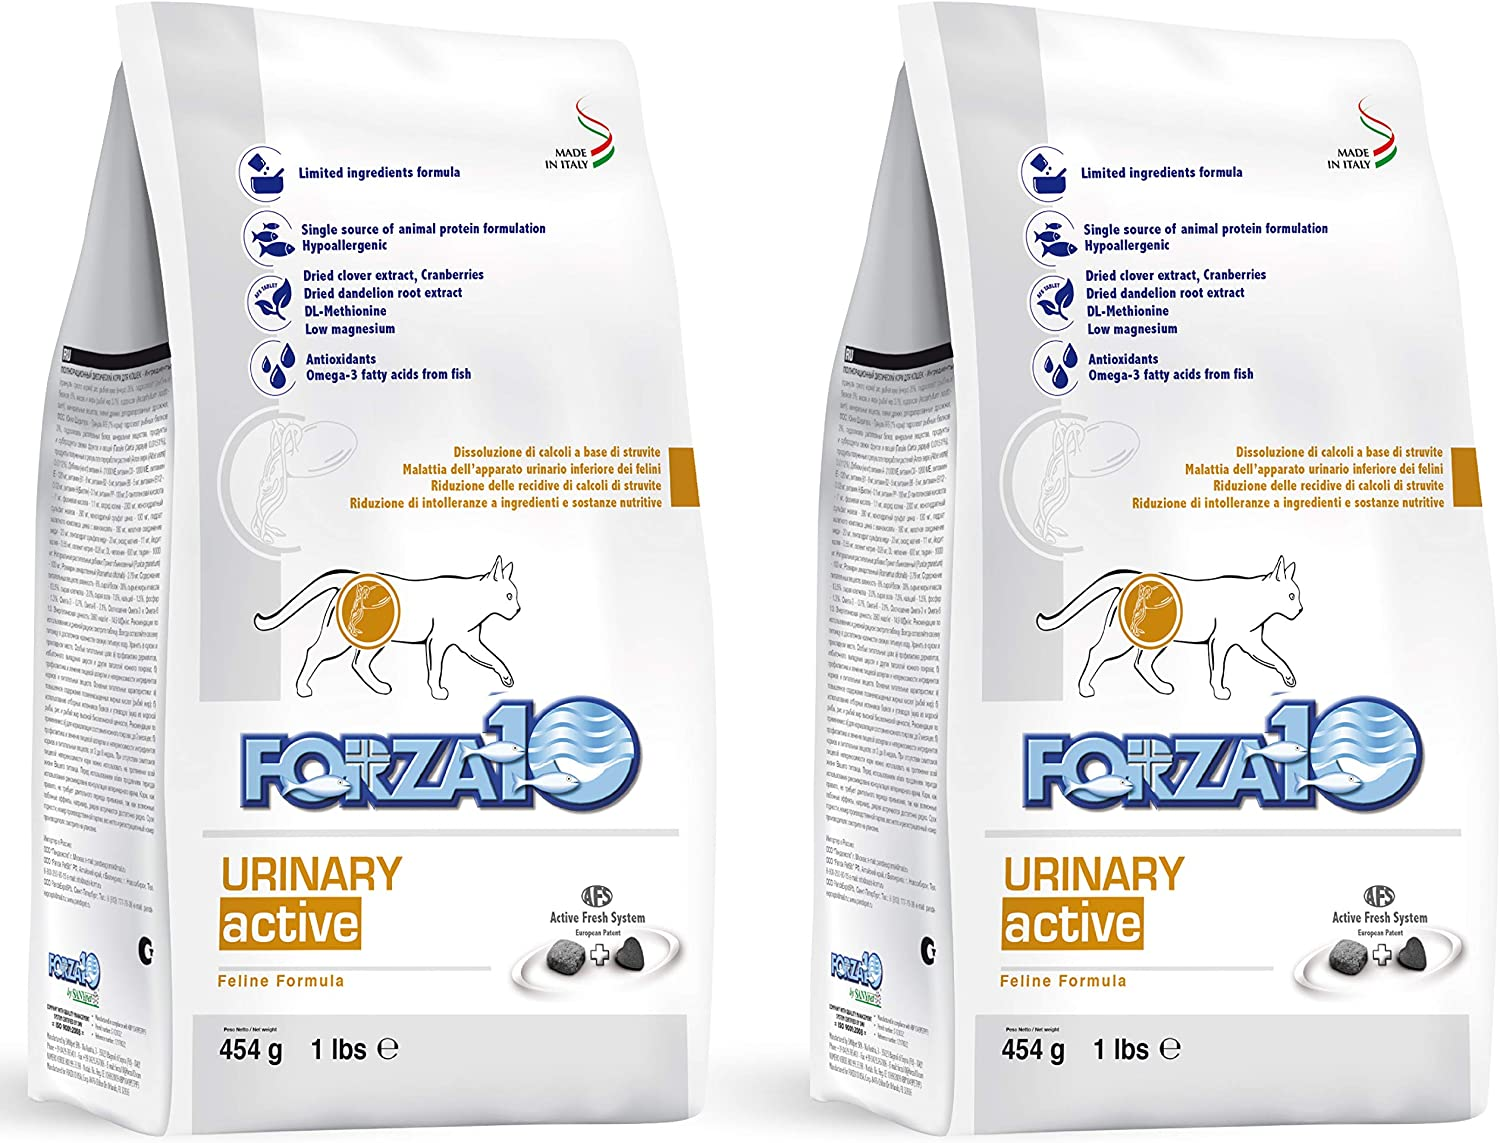 Forza10 Active Urinary Dry Cat Food, Urinary Tract Health Cat Food Dry Kibble Vet Approved Omega 3 Gluten Free, Anchovy, Adult Cats (2 Pounds)